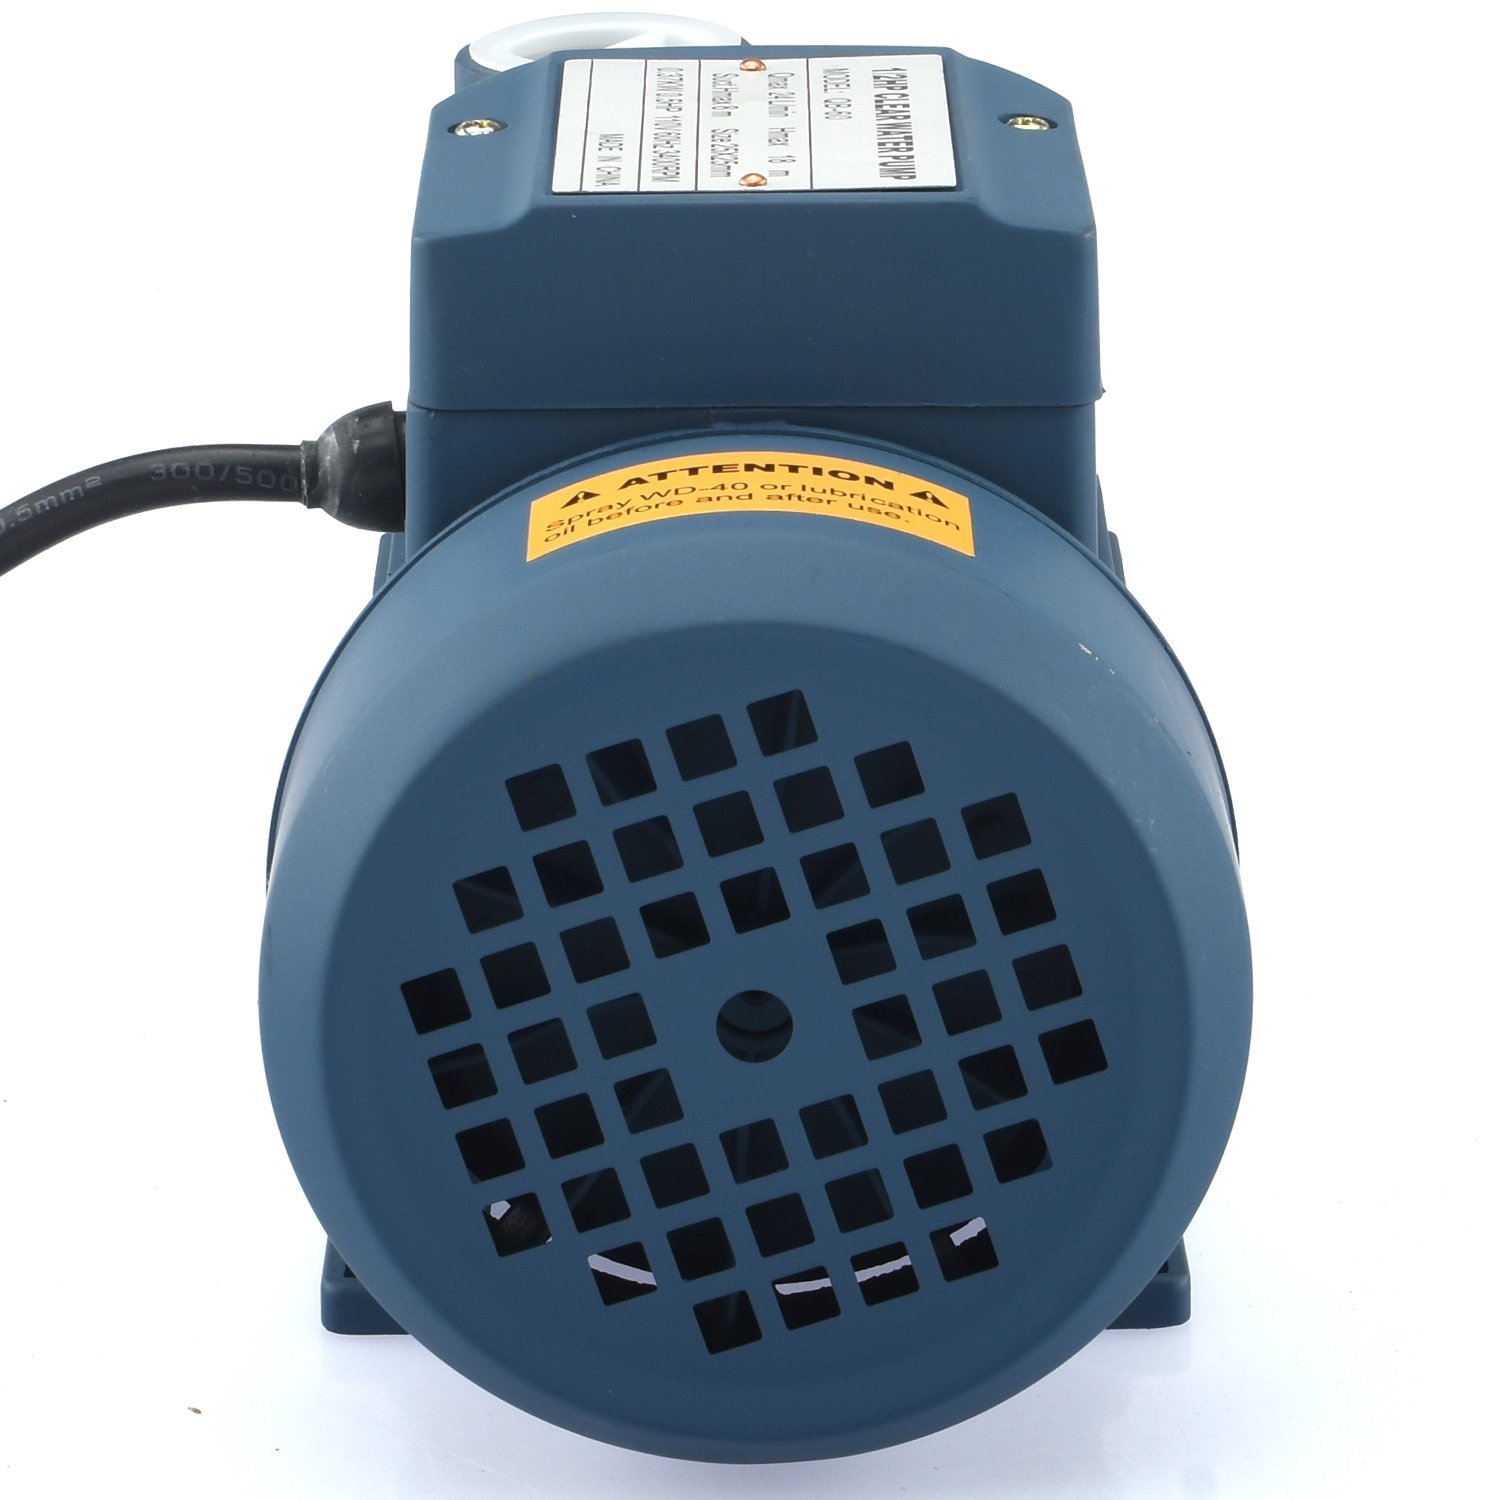 Tooluxe 50635 Electric Centrifugal Clear Water Pump, 0.5 HP | Pools, Ponds, Irrigation, Garden, Sprinkling | 380 GPH by Tooluxe (Image #3)